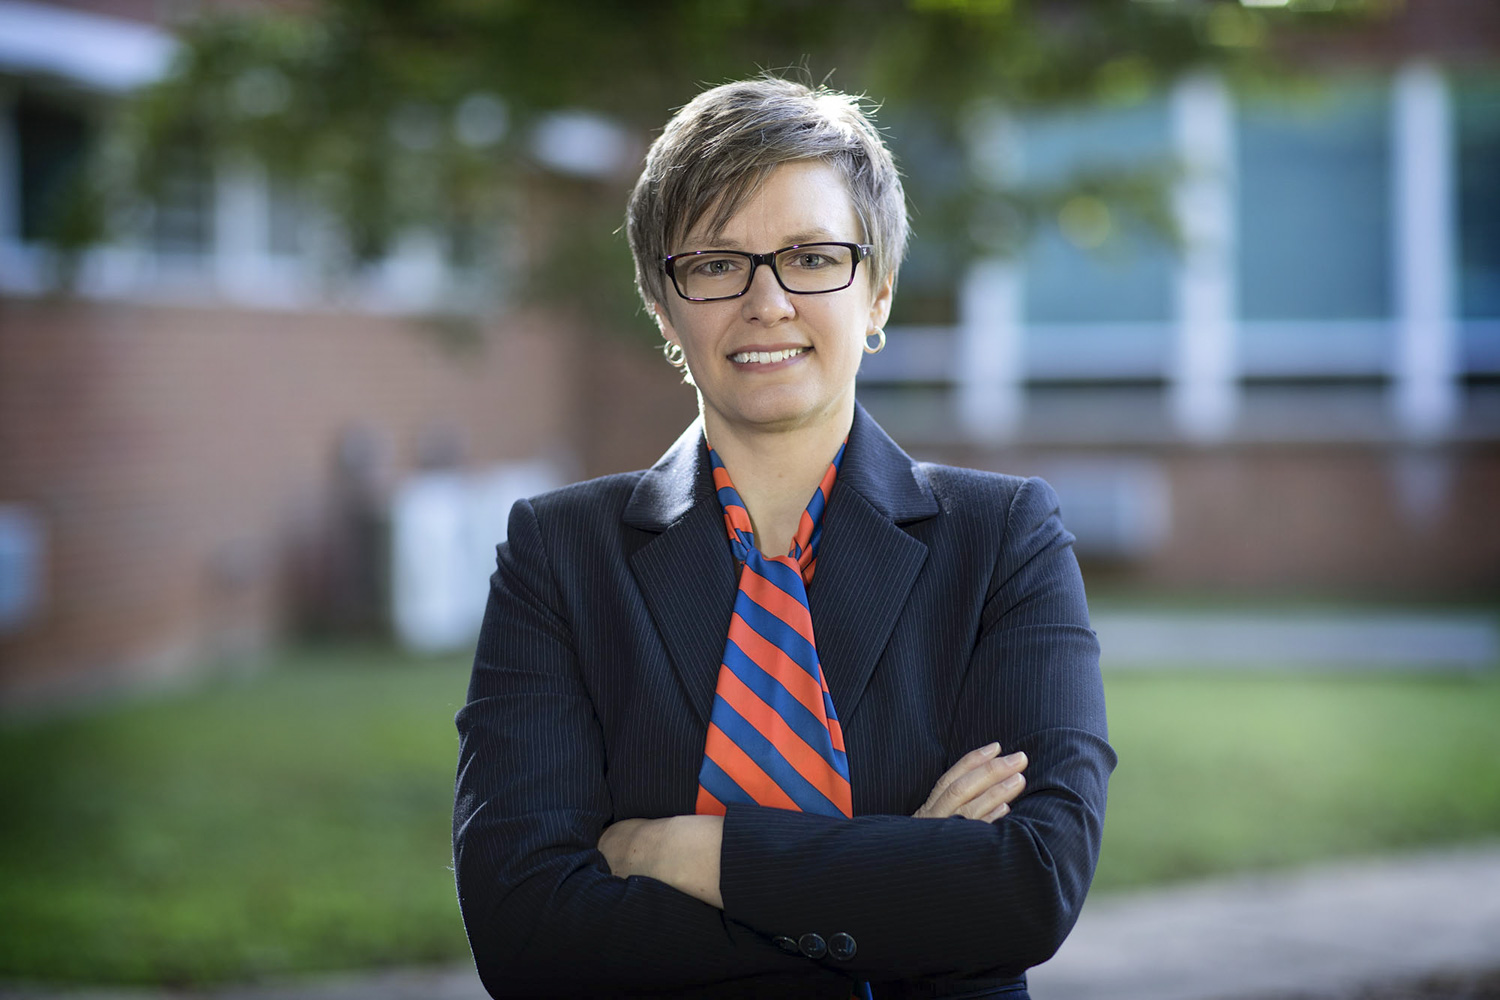 School of Continuing and Professional Studies professor Angela Orebaugh's course will focus on the effects of smart technologies in cities.